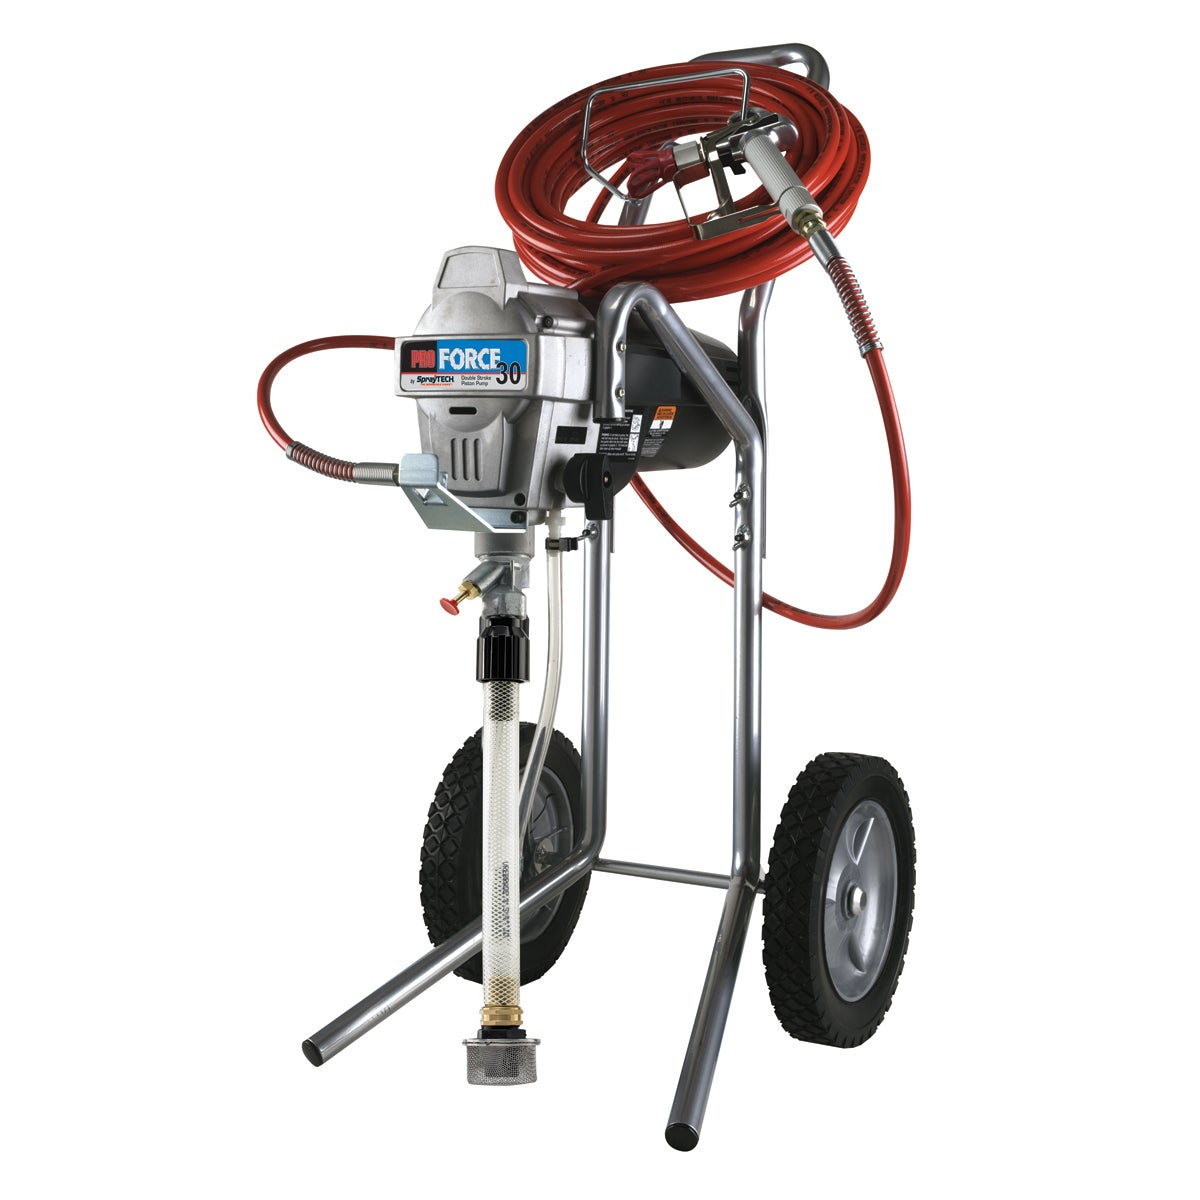 Wagner 'ProForce 30' Airless Paint Sprayer